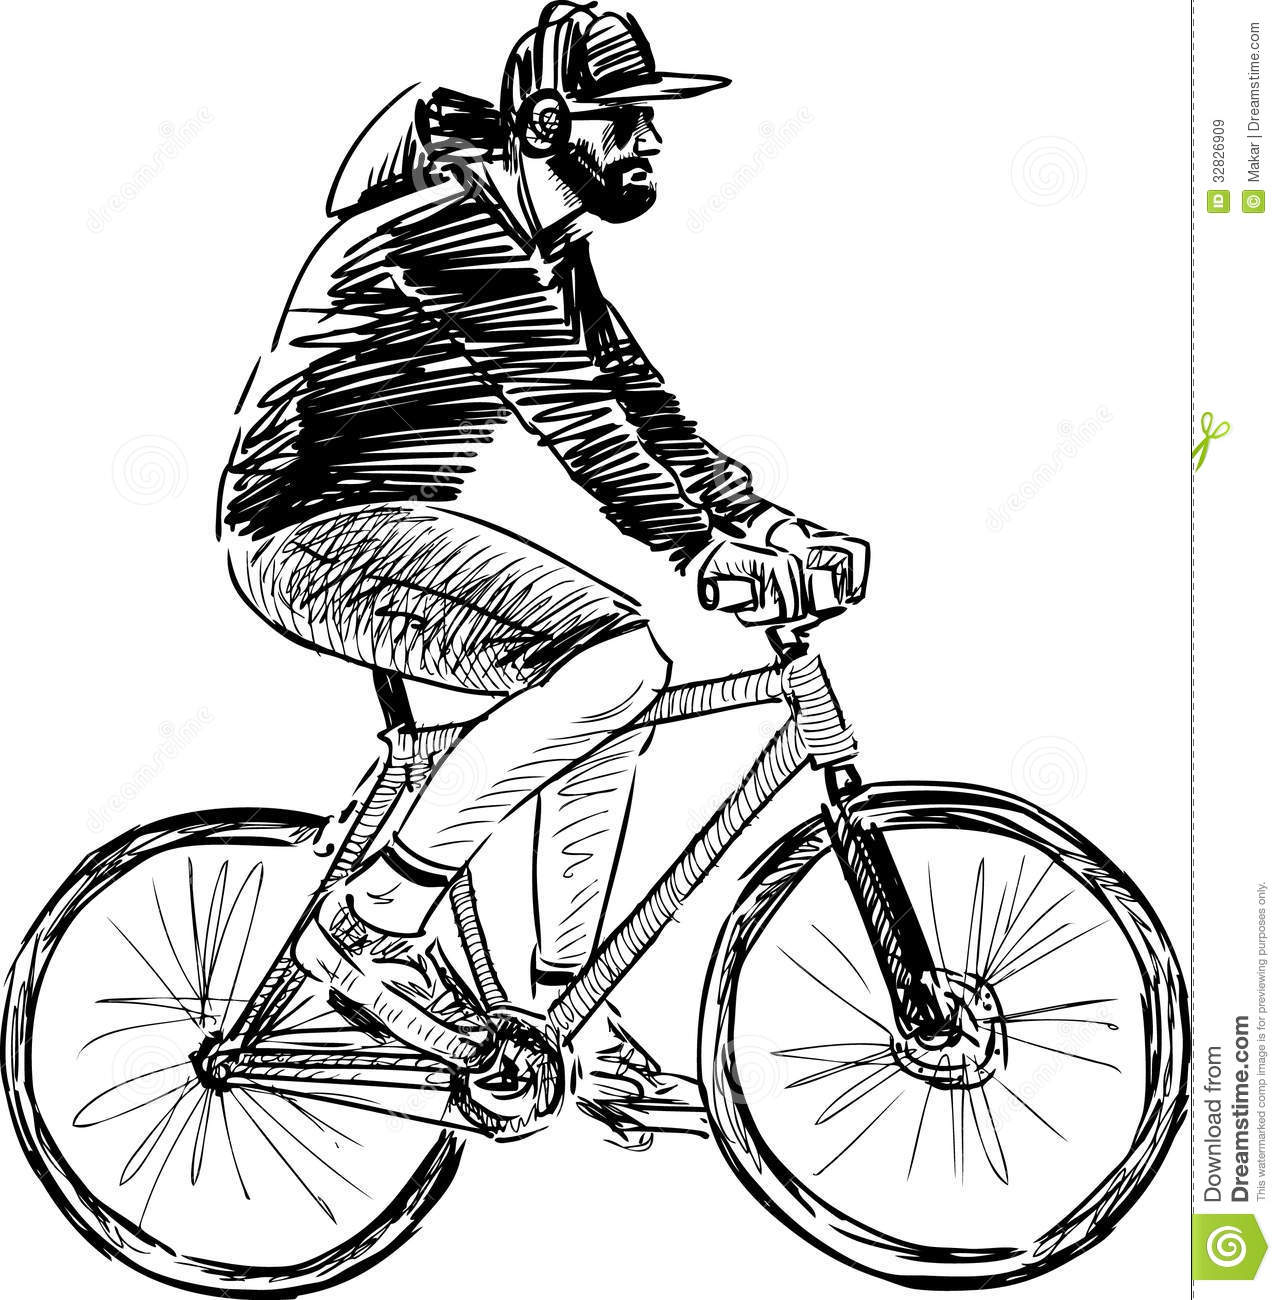 Drawn biker Person  a bicycle riding